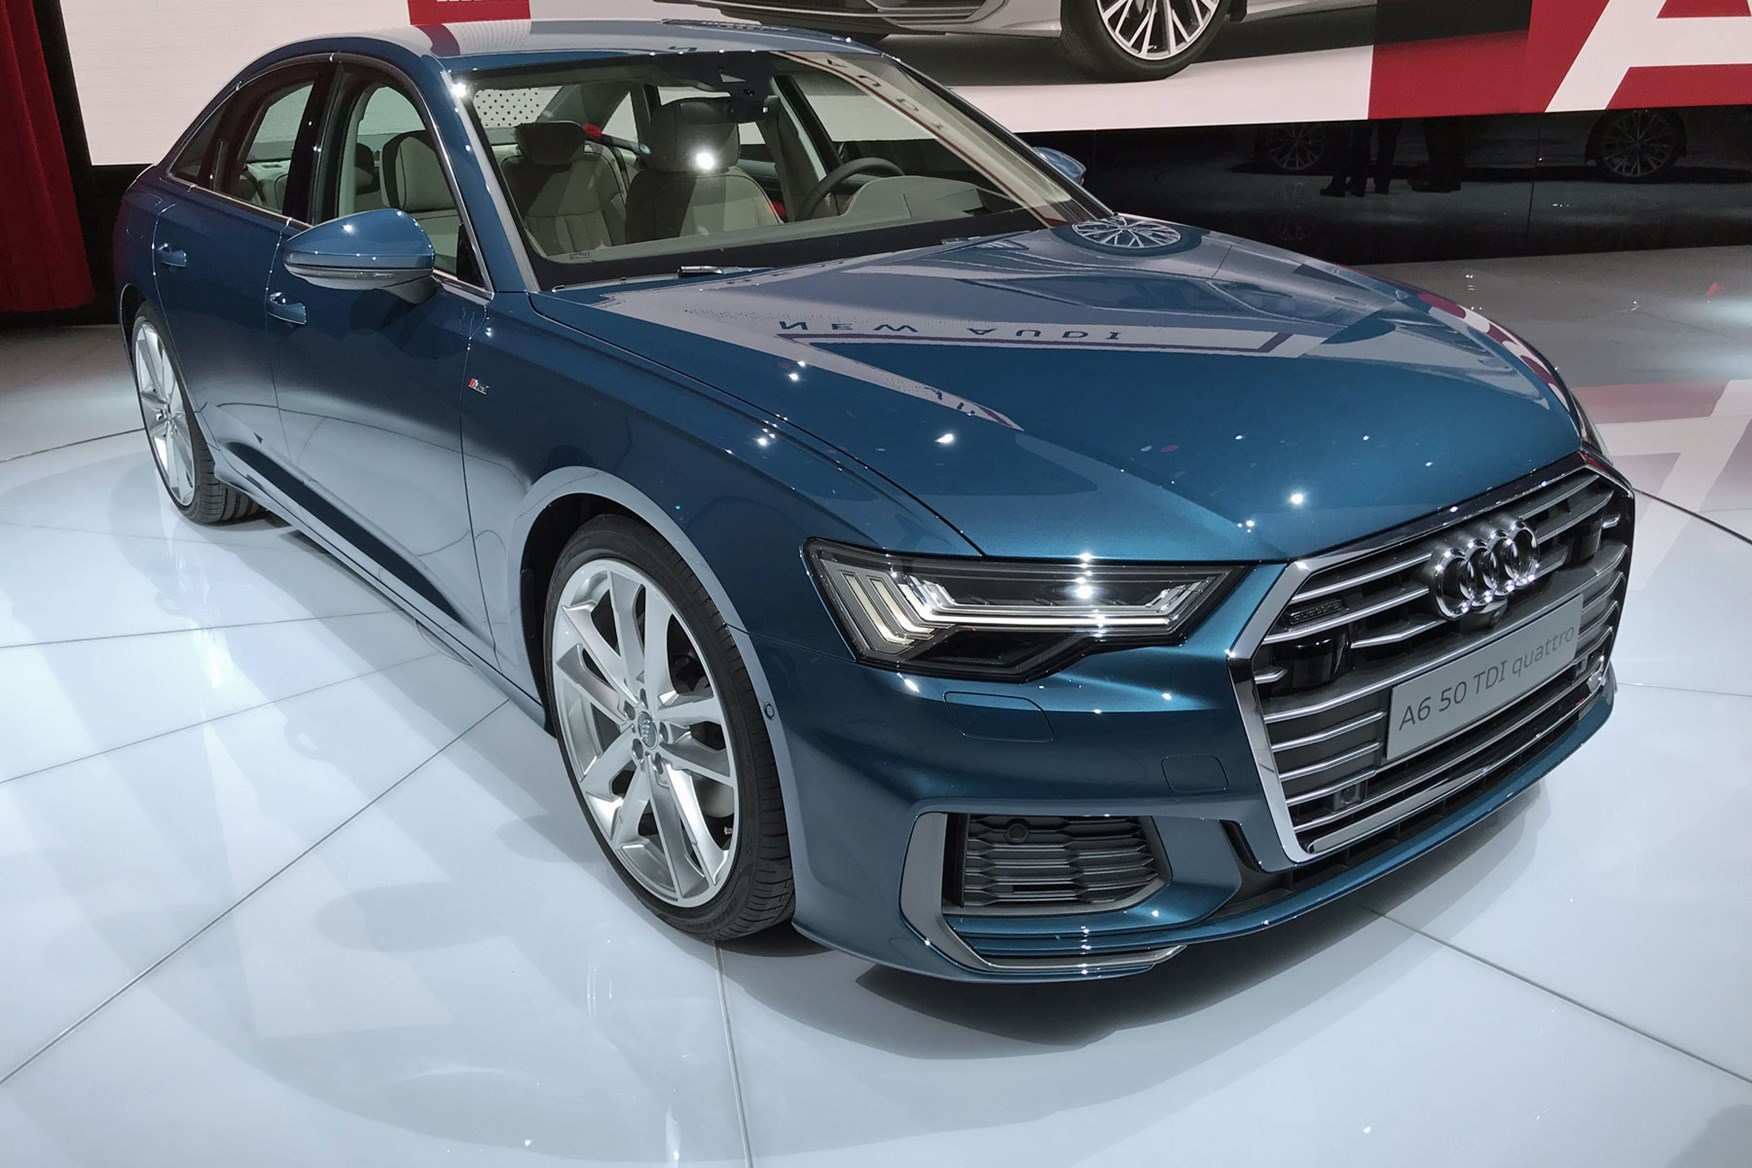 88 The New Fastest Audi 2019 Concept New Concept for New Fastest Audi 2019 Concept